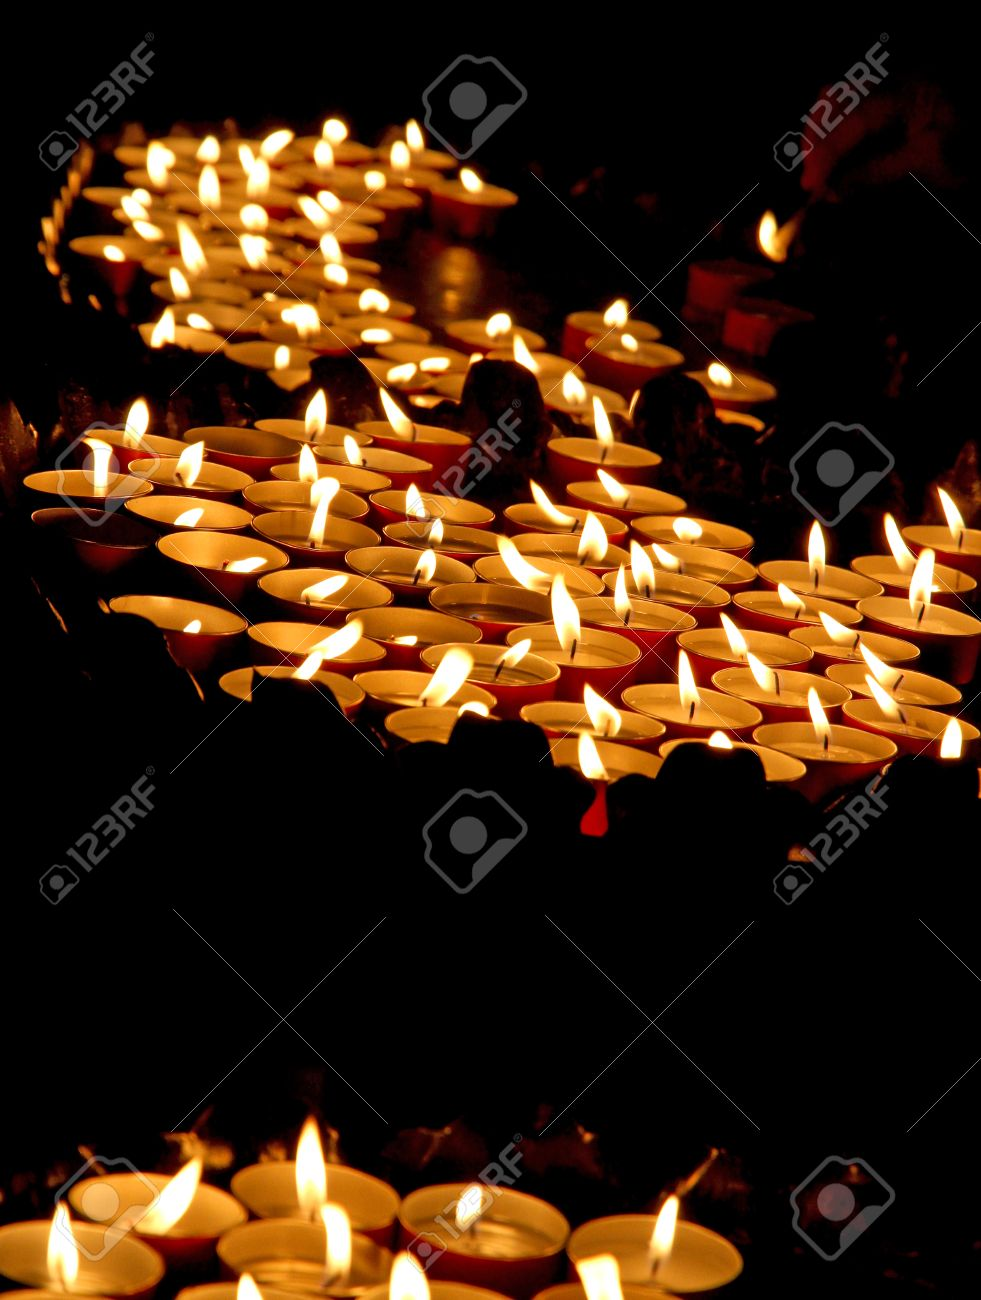 Many Lit Candles In A Church During The Funeral Celebration Stock ...